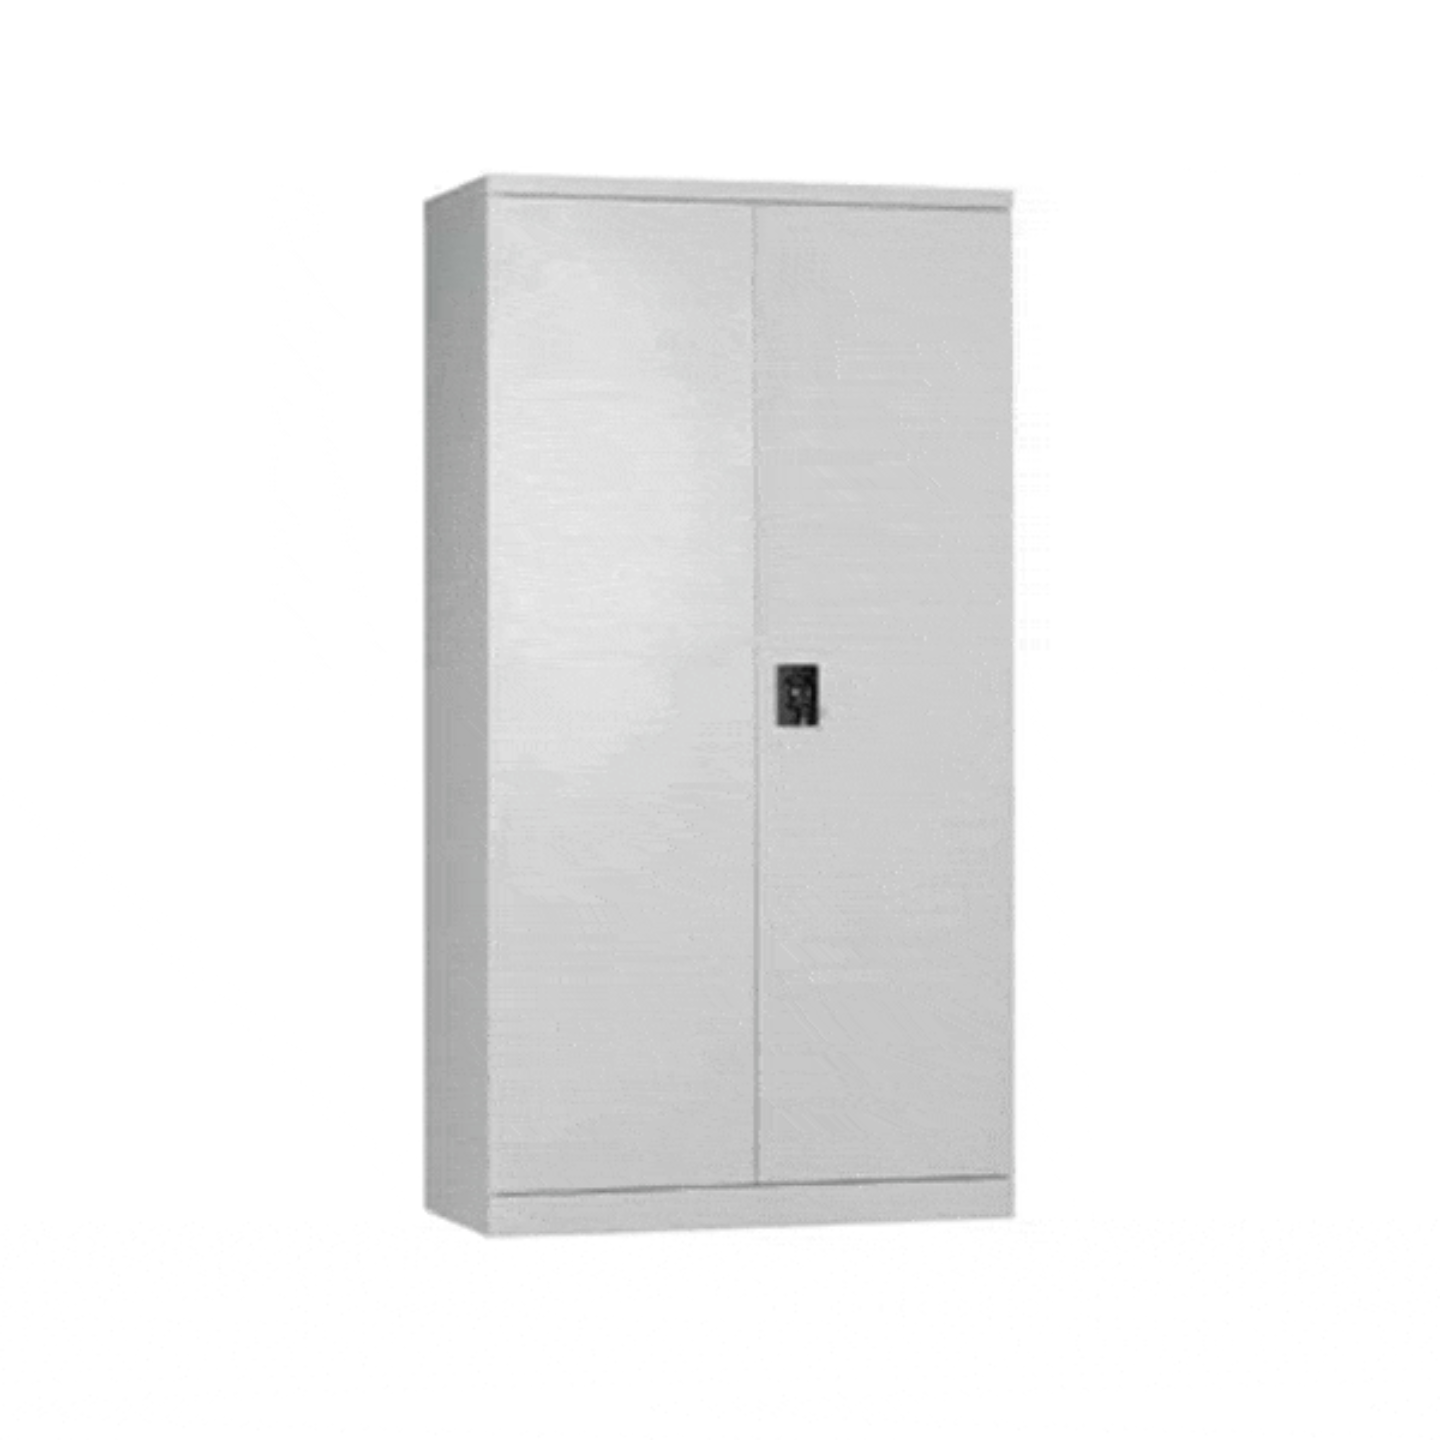 ST-012 Full Height Swing Door Cabinet (Grey)